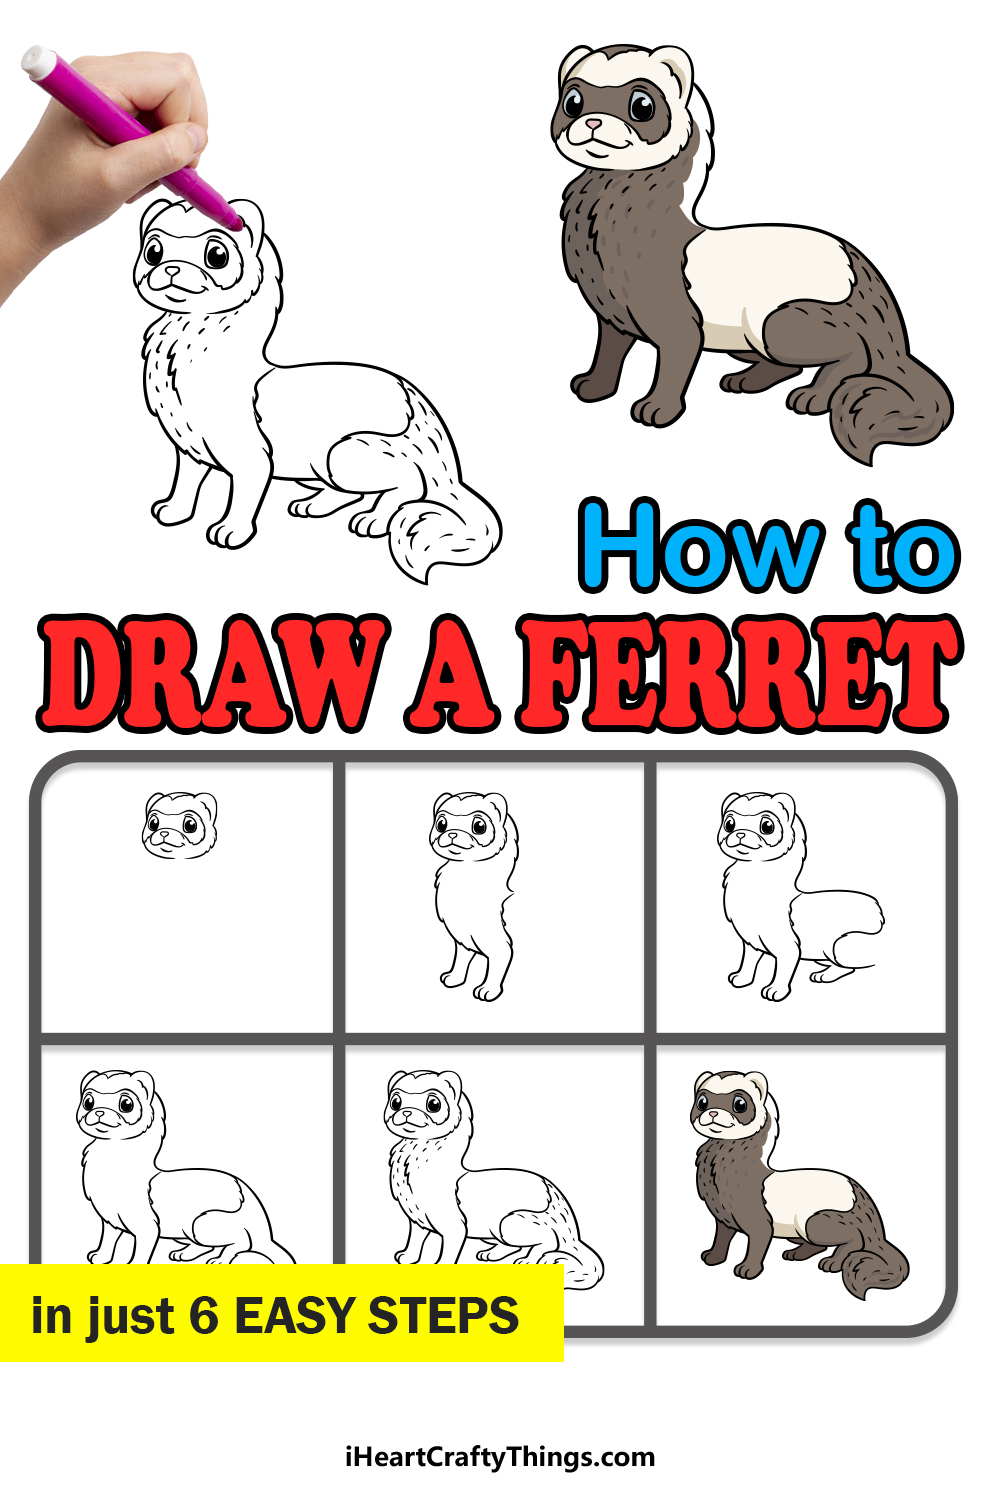 how to draw a ferret in 6 easy steps